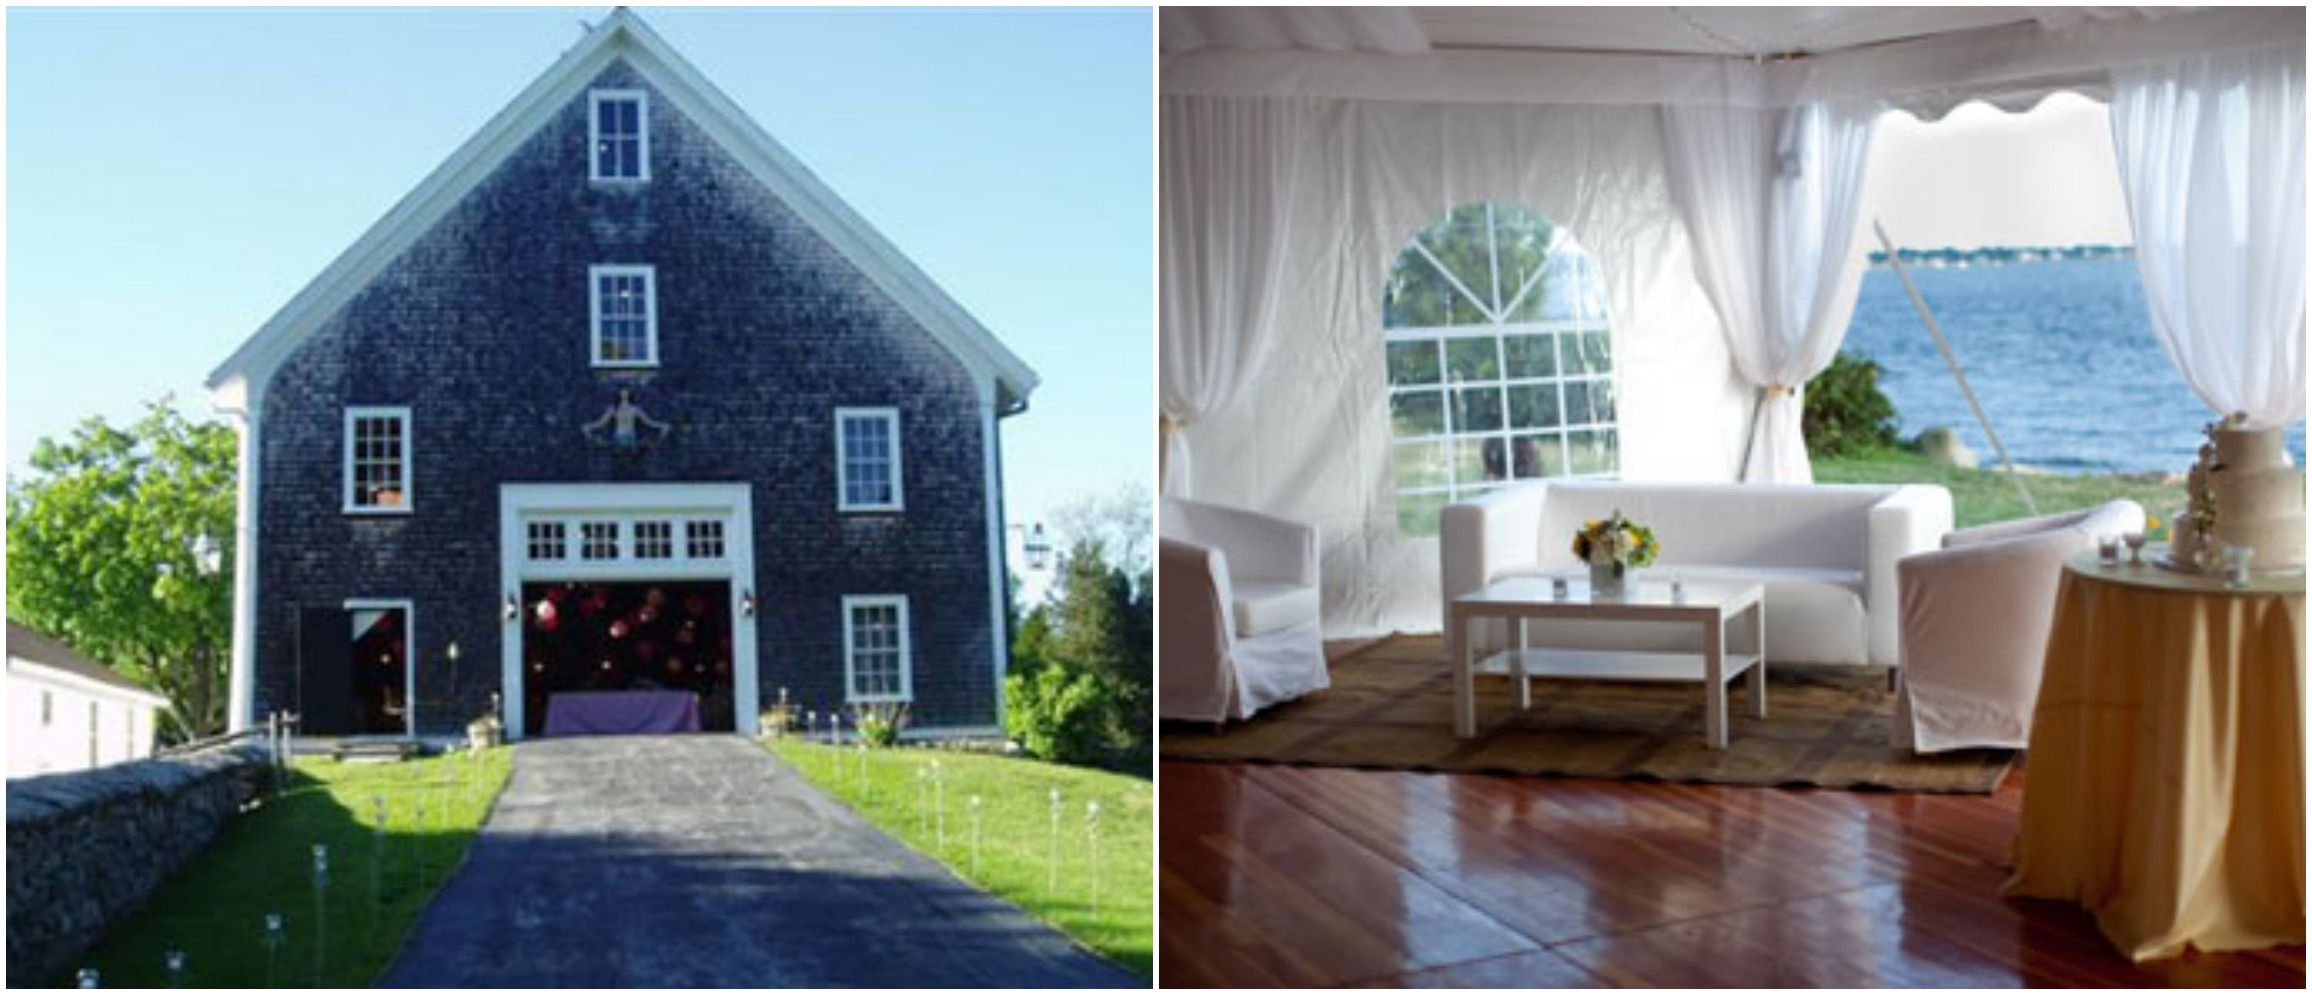 Top 10 Rustic Wedding Venues In New England | Rustic ...